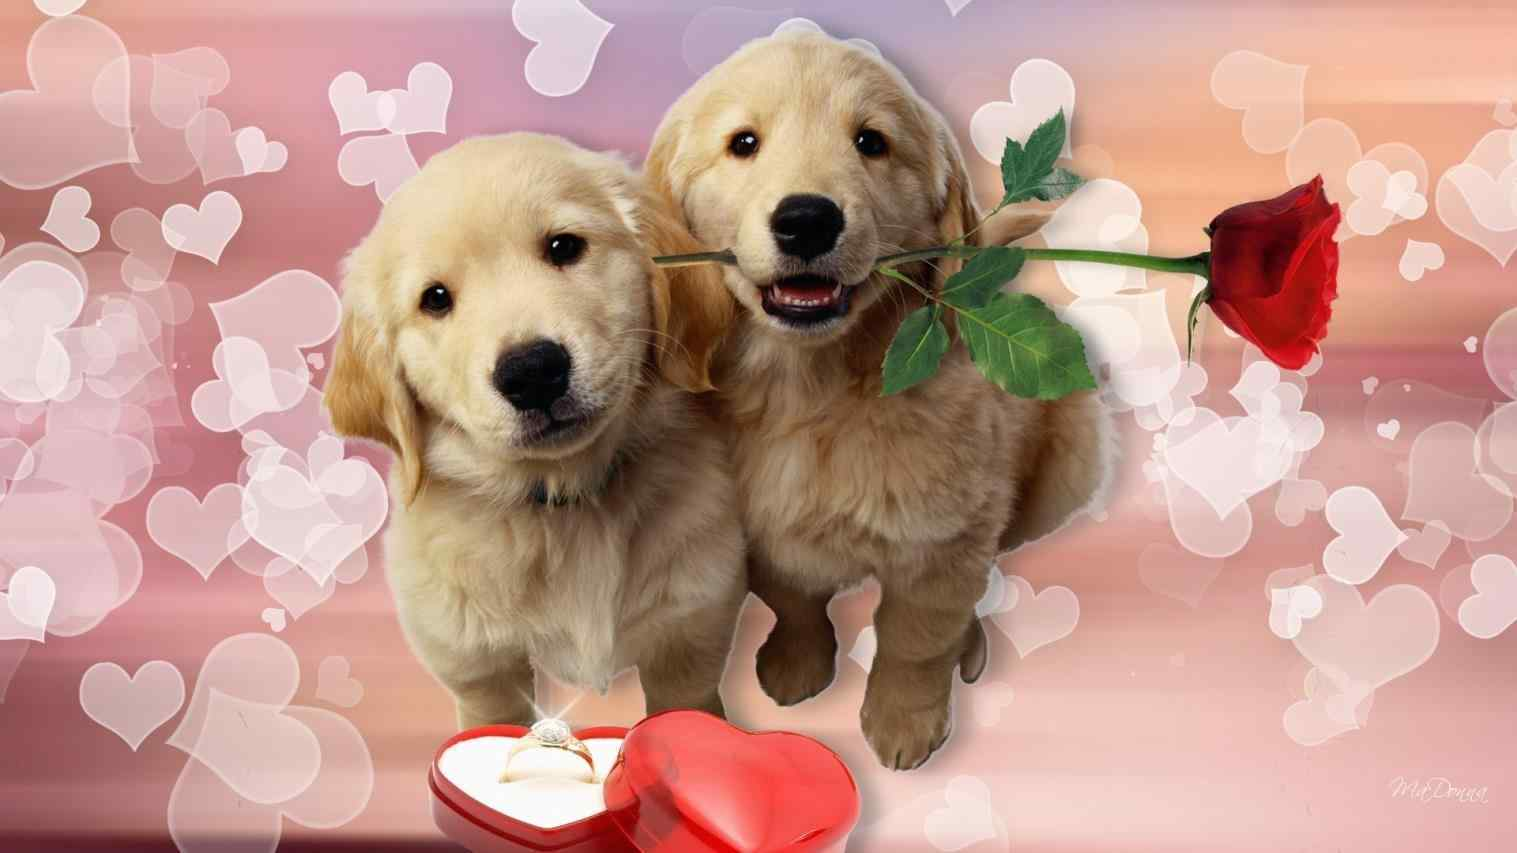 Valentine S Day Puppy Wallpapers Top Free Valentine S Day Puppy Backgrounds Wallpaperaccess